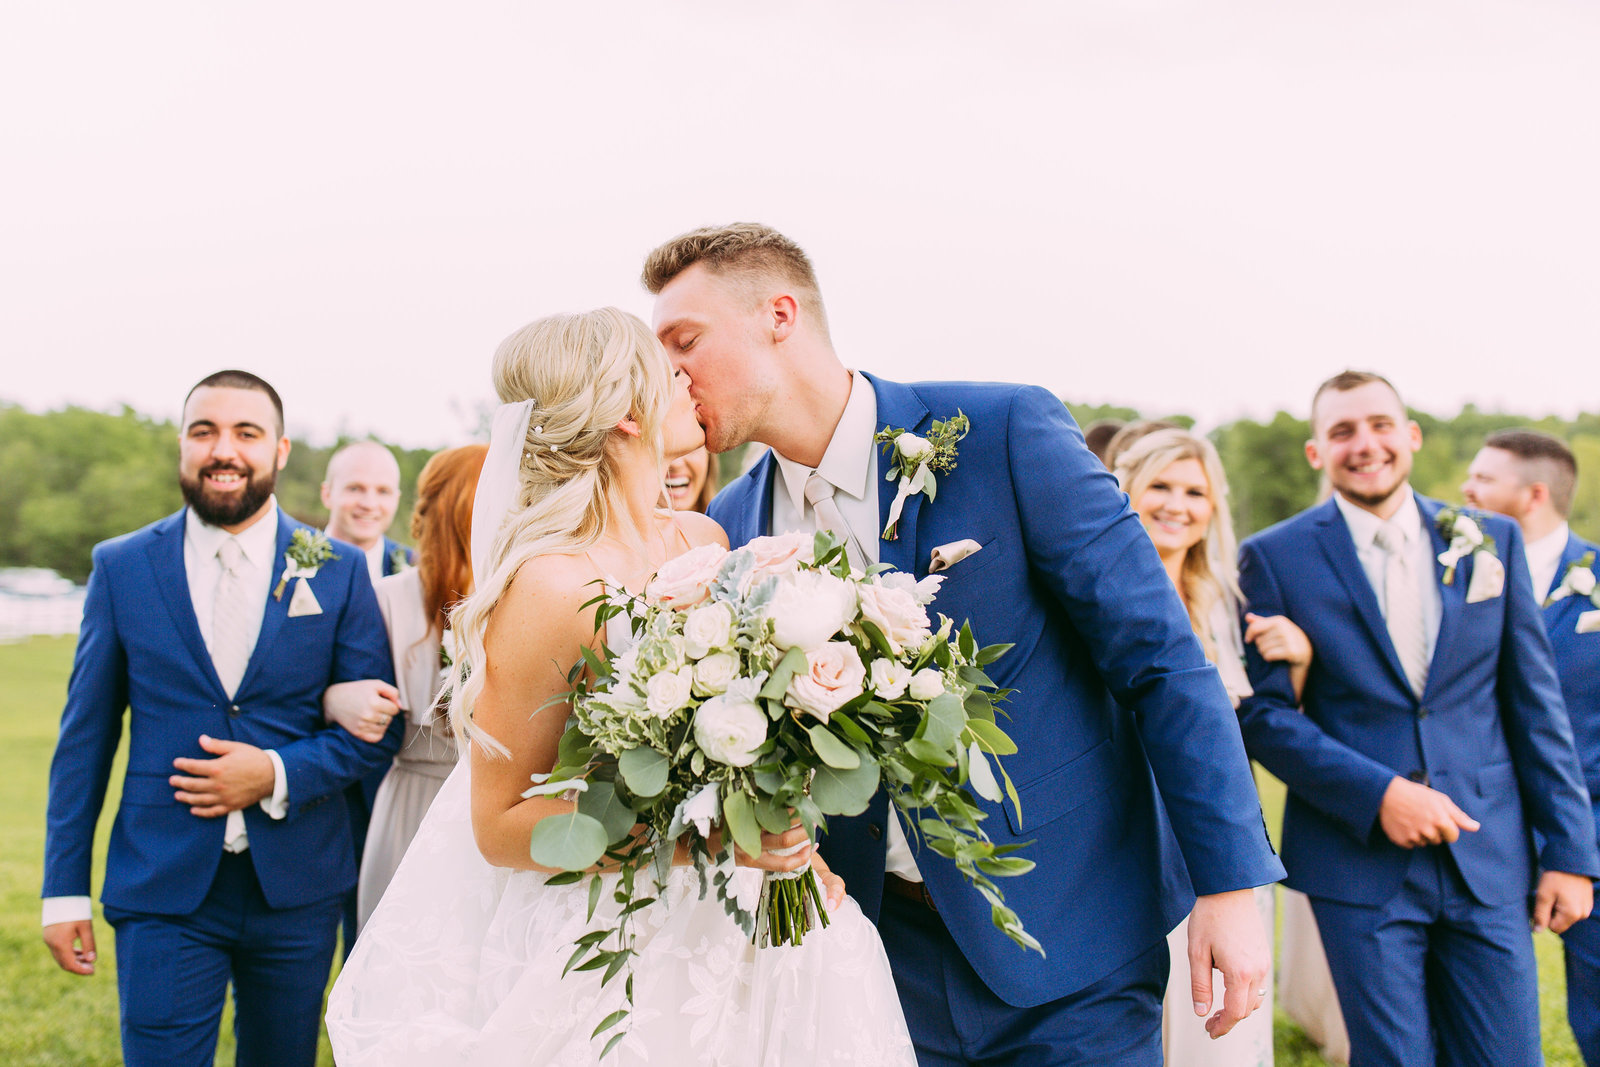 couple kissing at wedding with wedding party